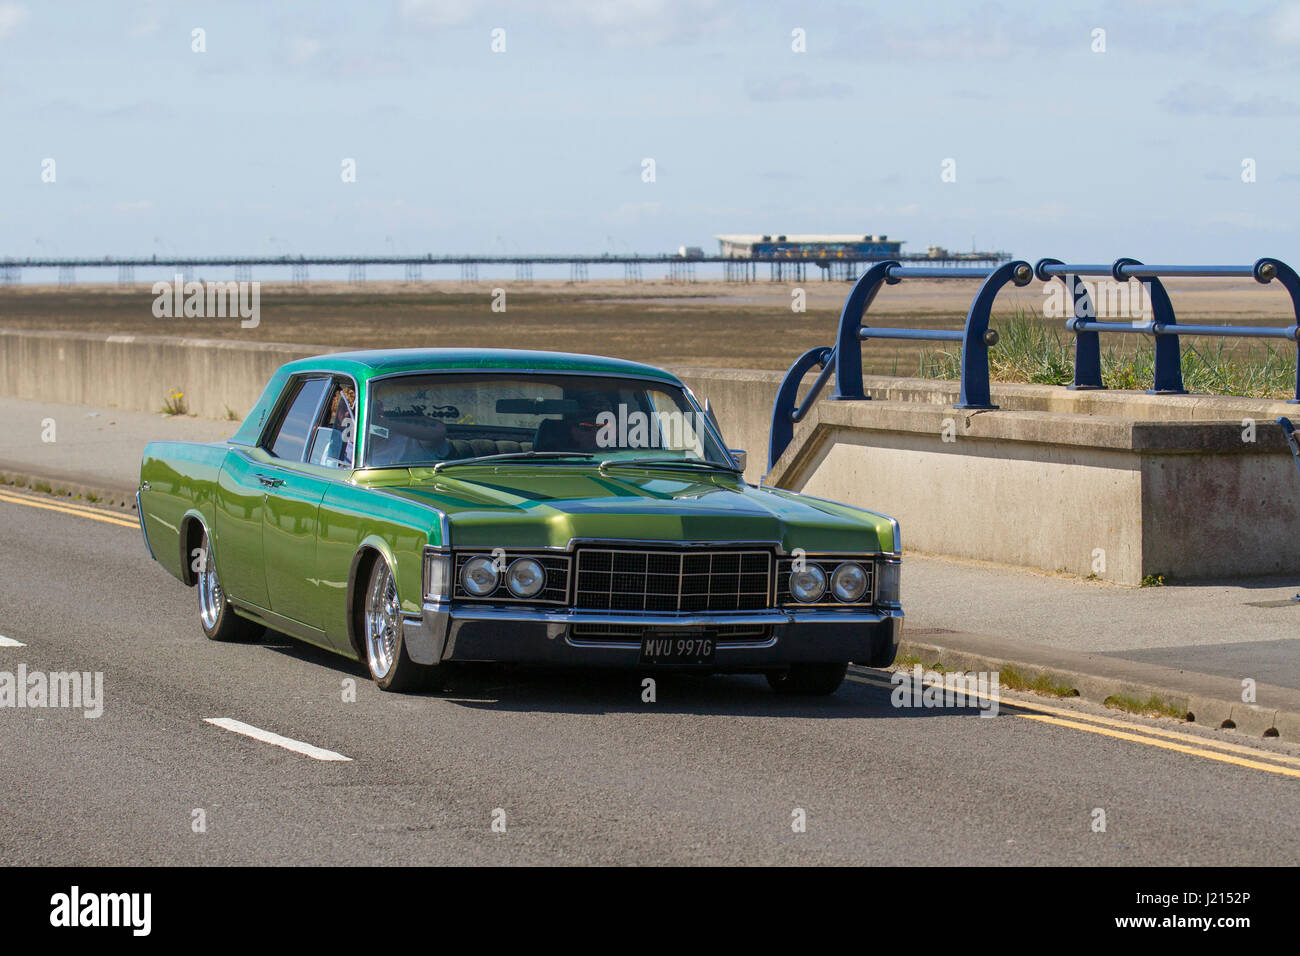 1969 American green Lincoln Cars from the Gawsworth Hall Veteran ...